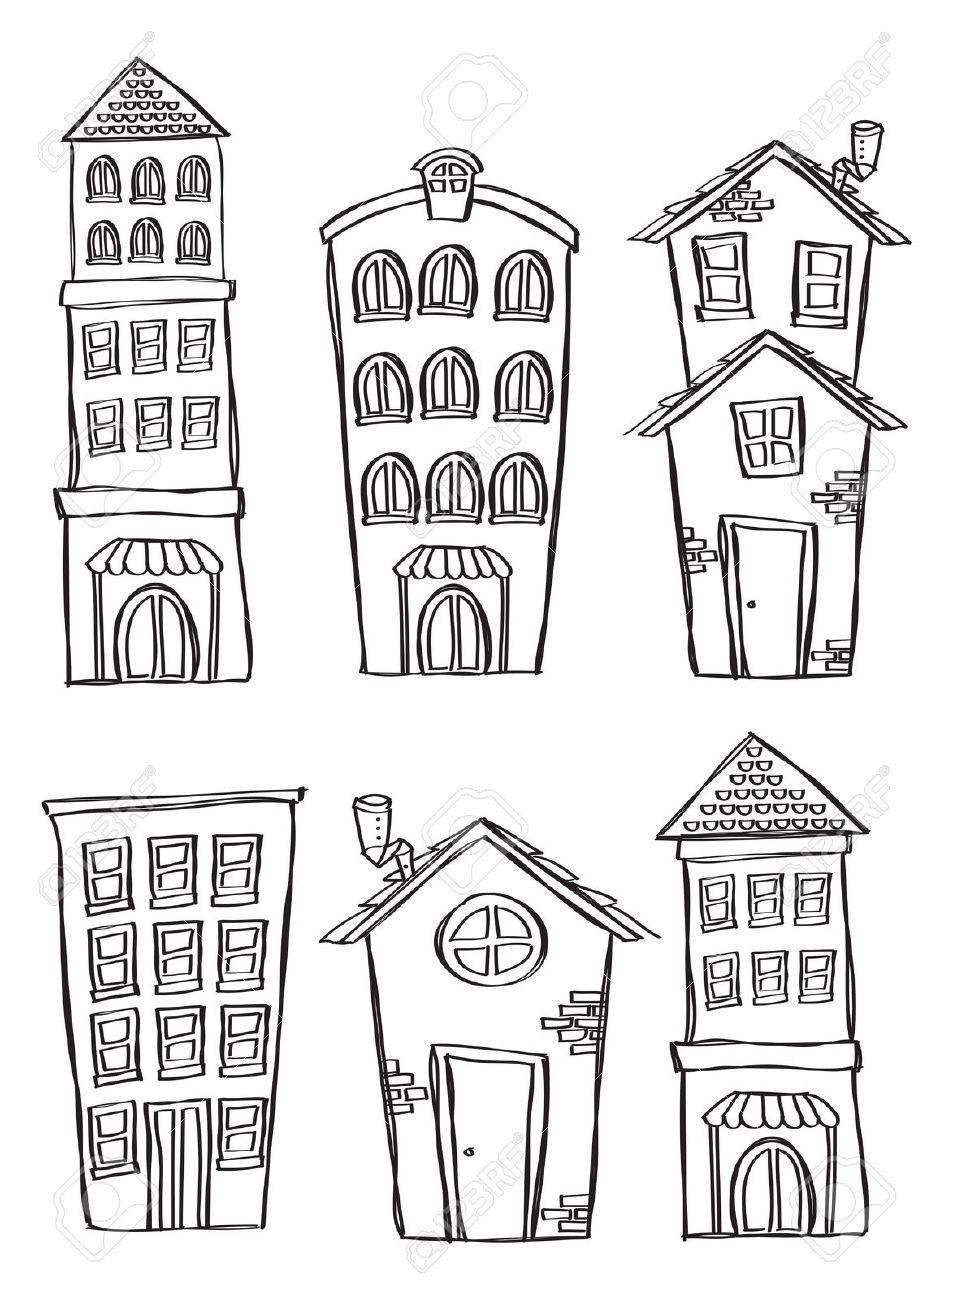 Zentangles And Art Set Of Building In Doodle Style